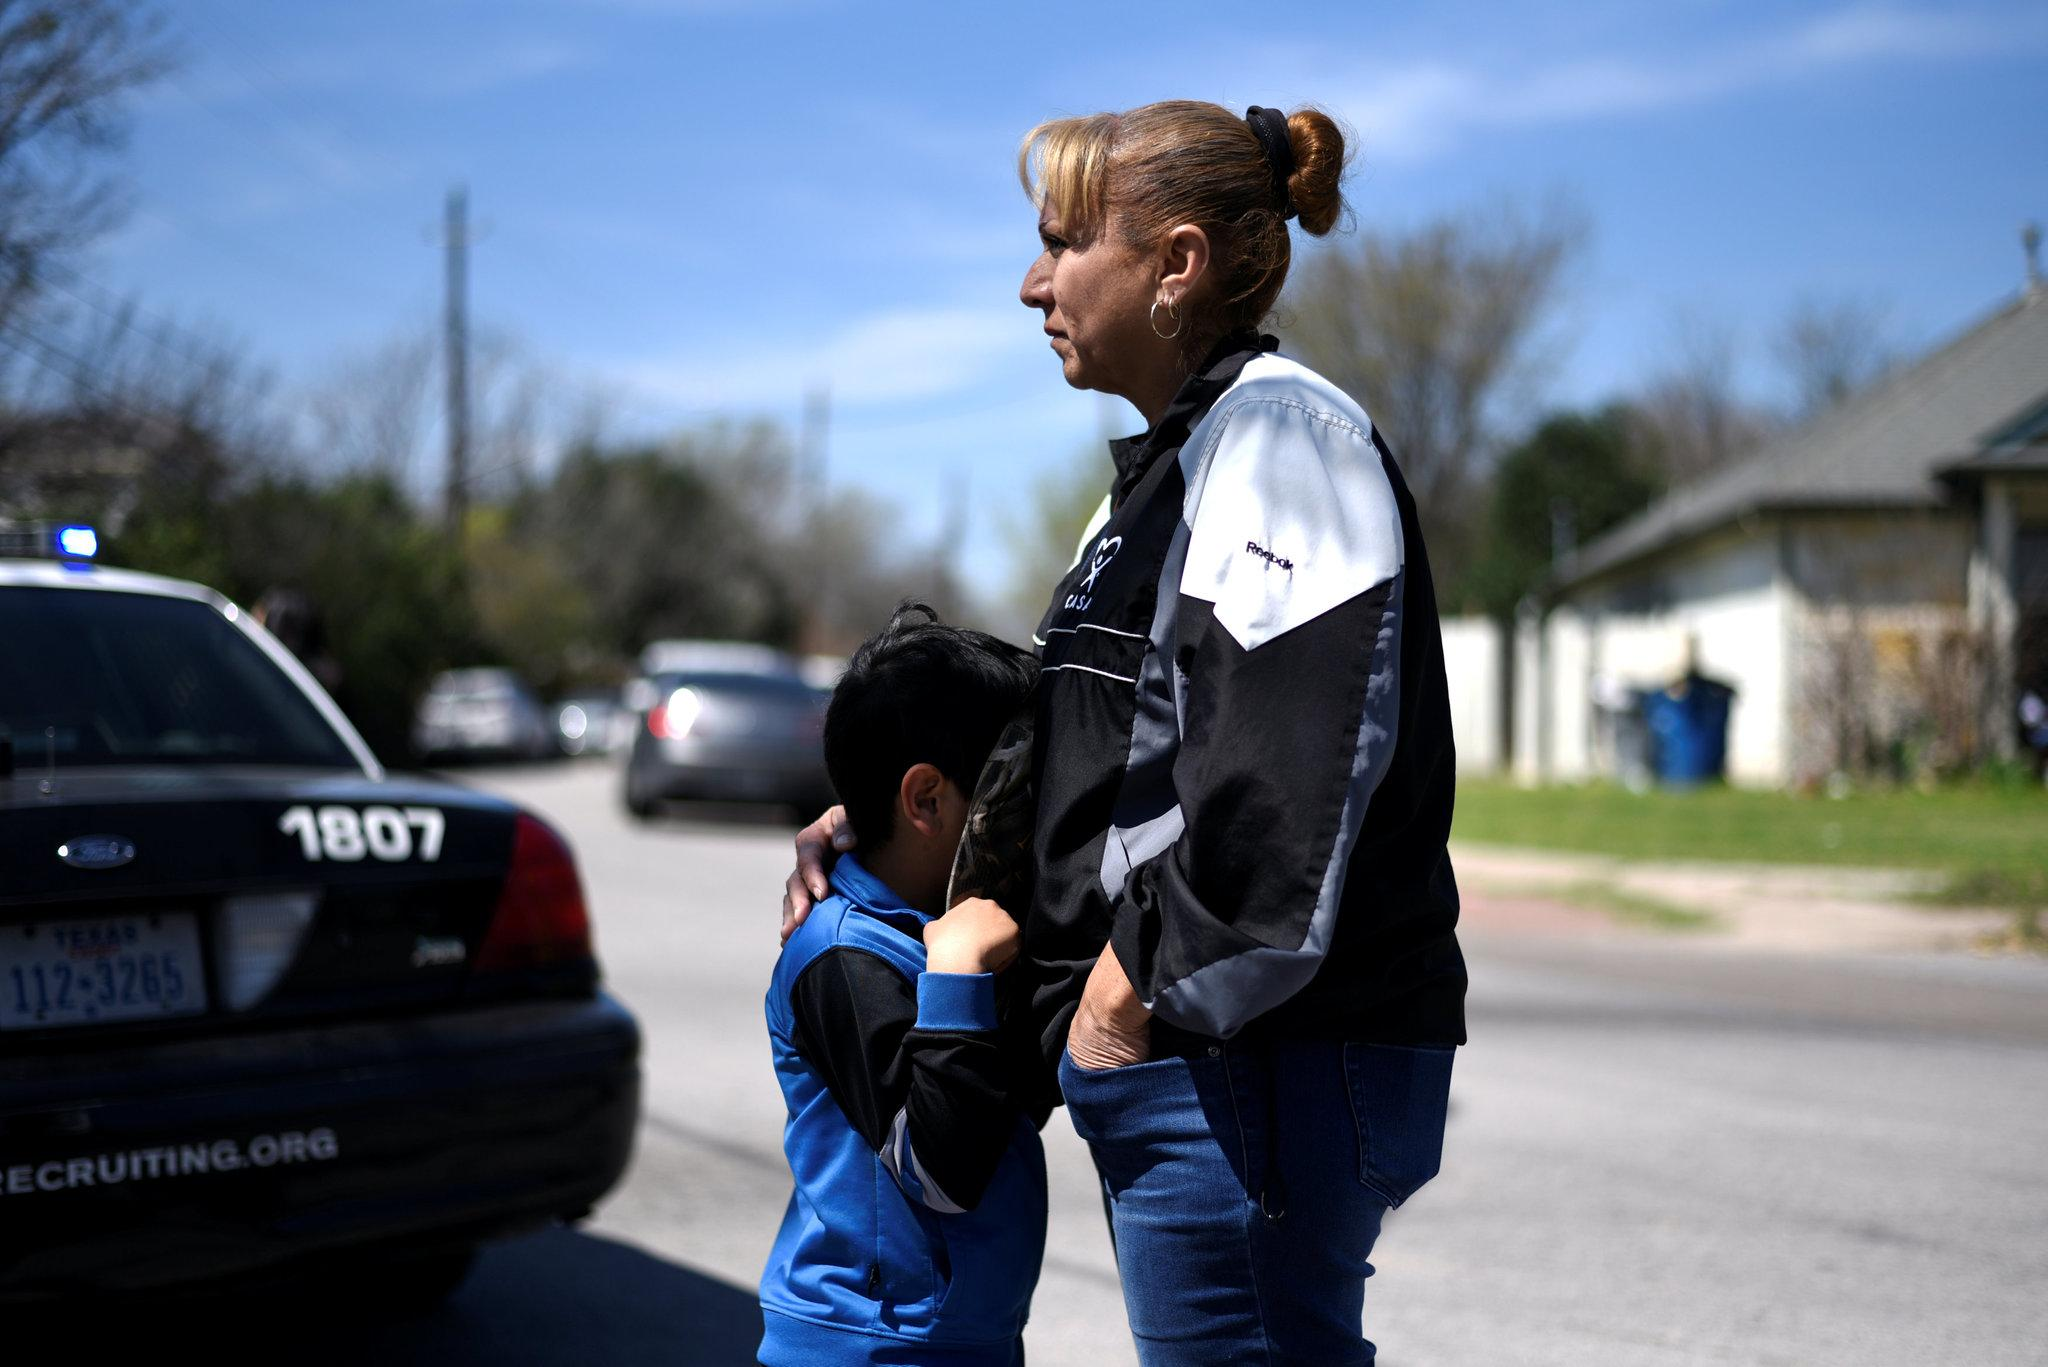 Isaac Machado and his mother, Delores, stand near the scene of a package bomb explosion in Austin, TX, on March 12. Credit: Sergio Flores/Reuters